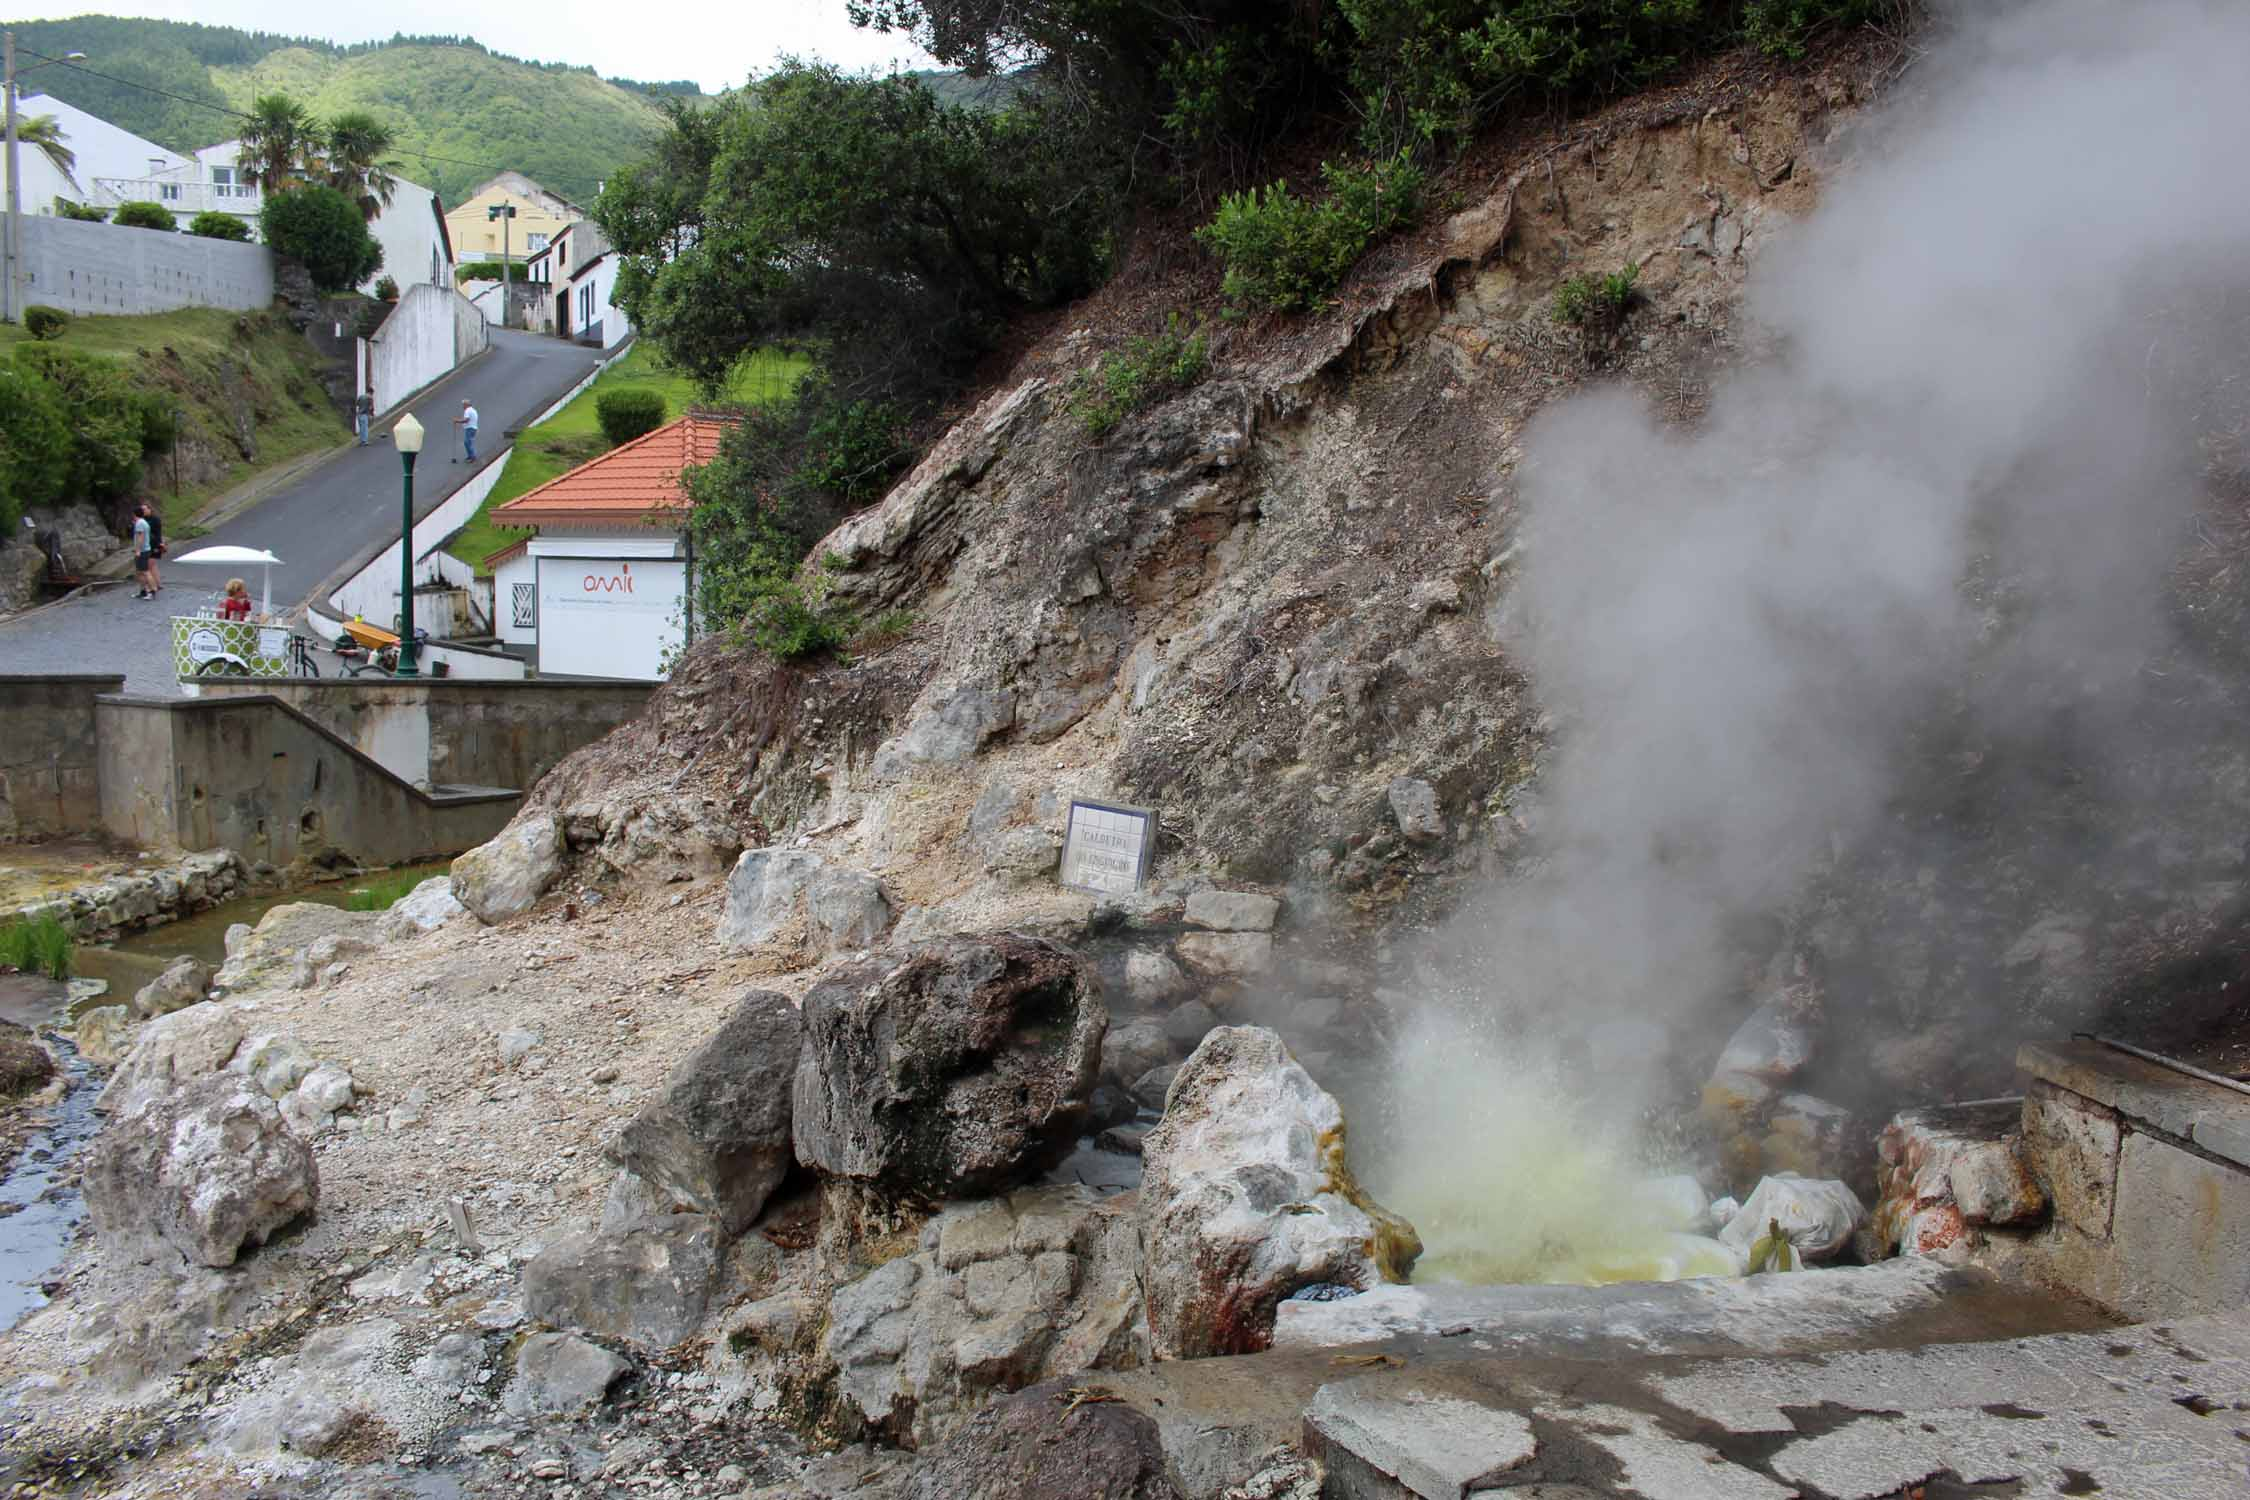 Boiling water in the village of Furnas, São Miguel island, Azores